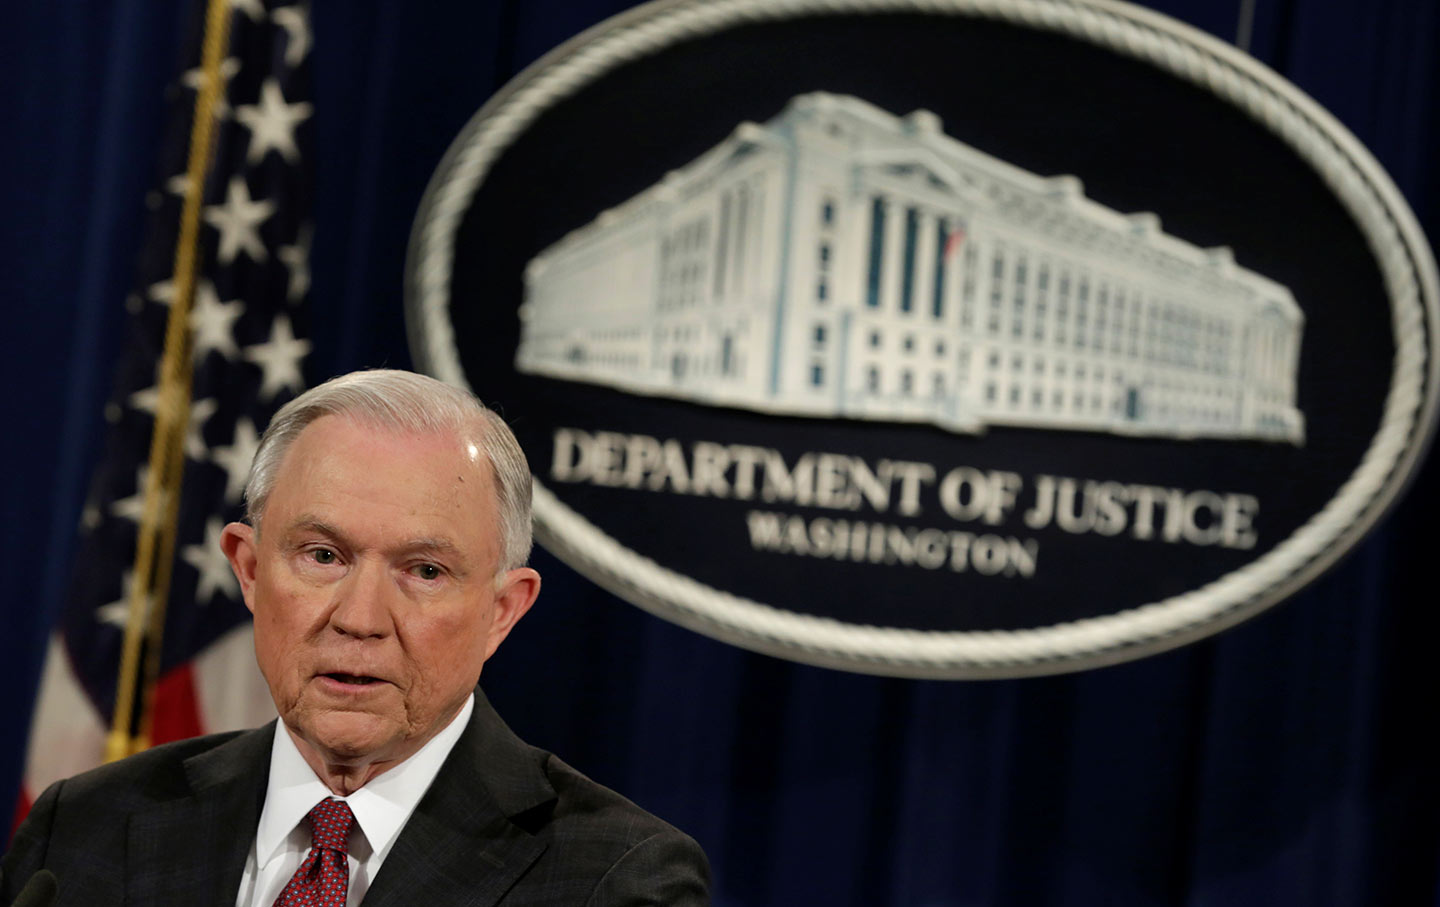 Jeff Sessions at a news conference